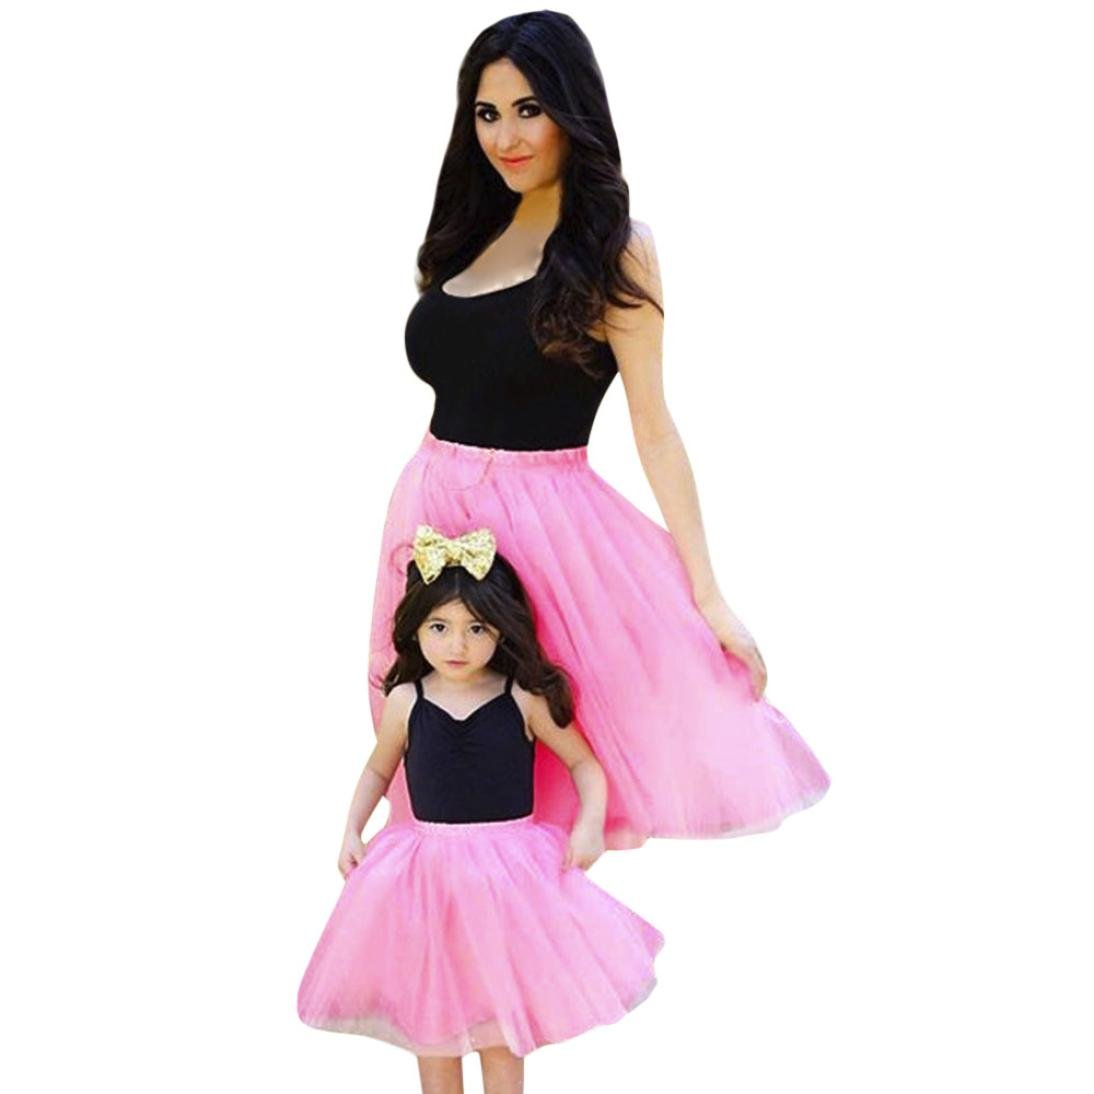 AutumnFall 2018 New Style Family Sundress,Mom&Me Lady Women Baby Girls Kids Solid Tutu Match Family Dress Clothes (Size:L, Black+Pink-Women) by AutumnFall